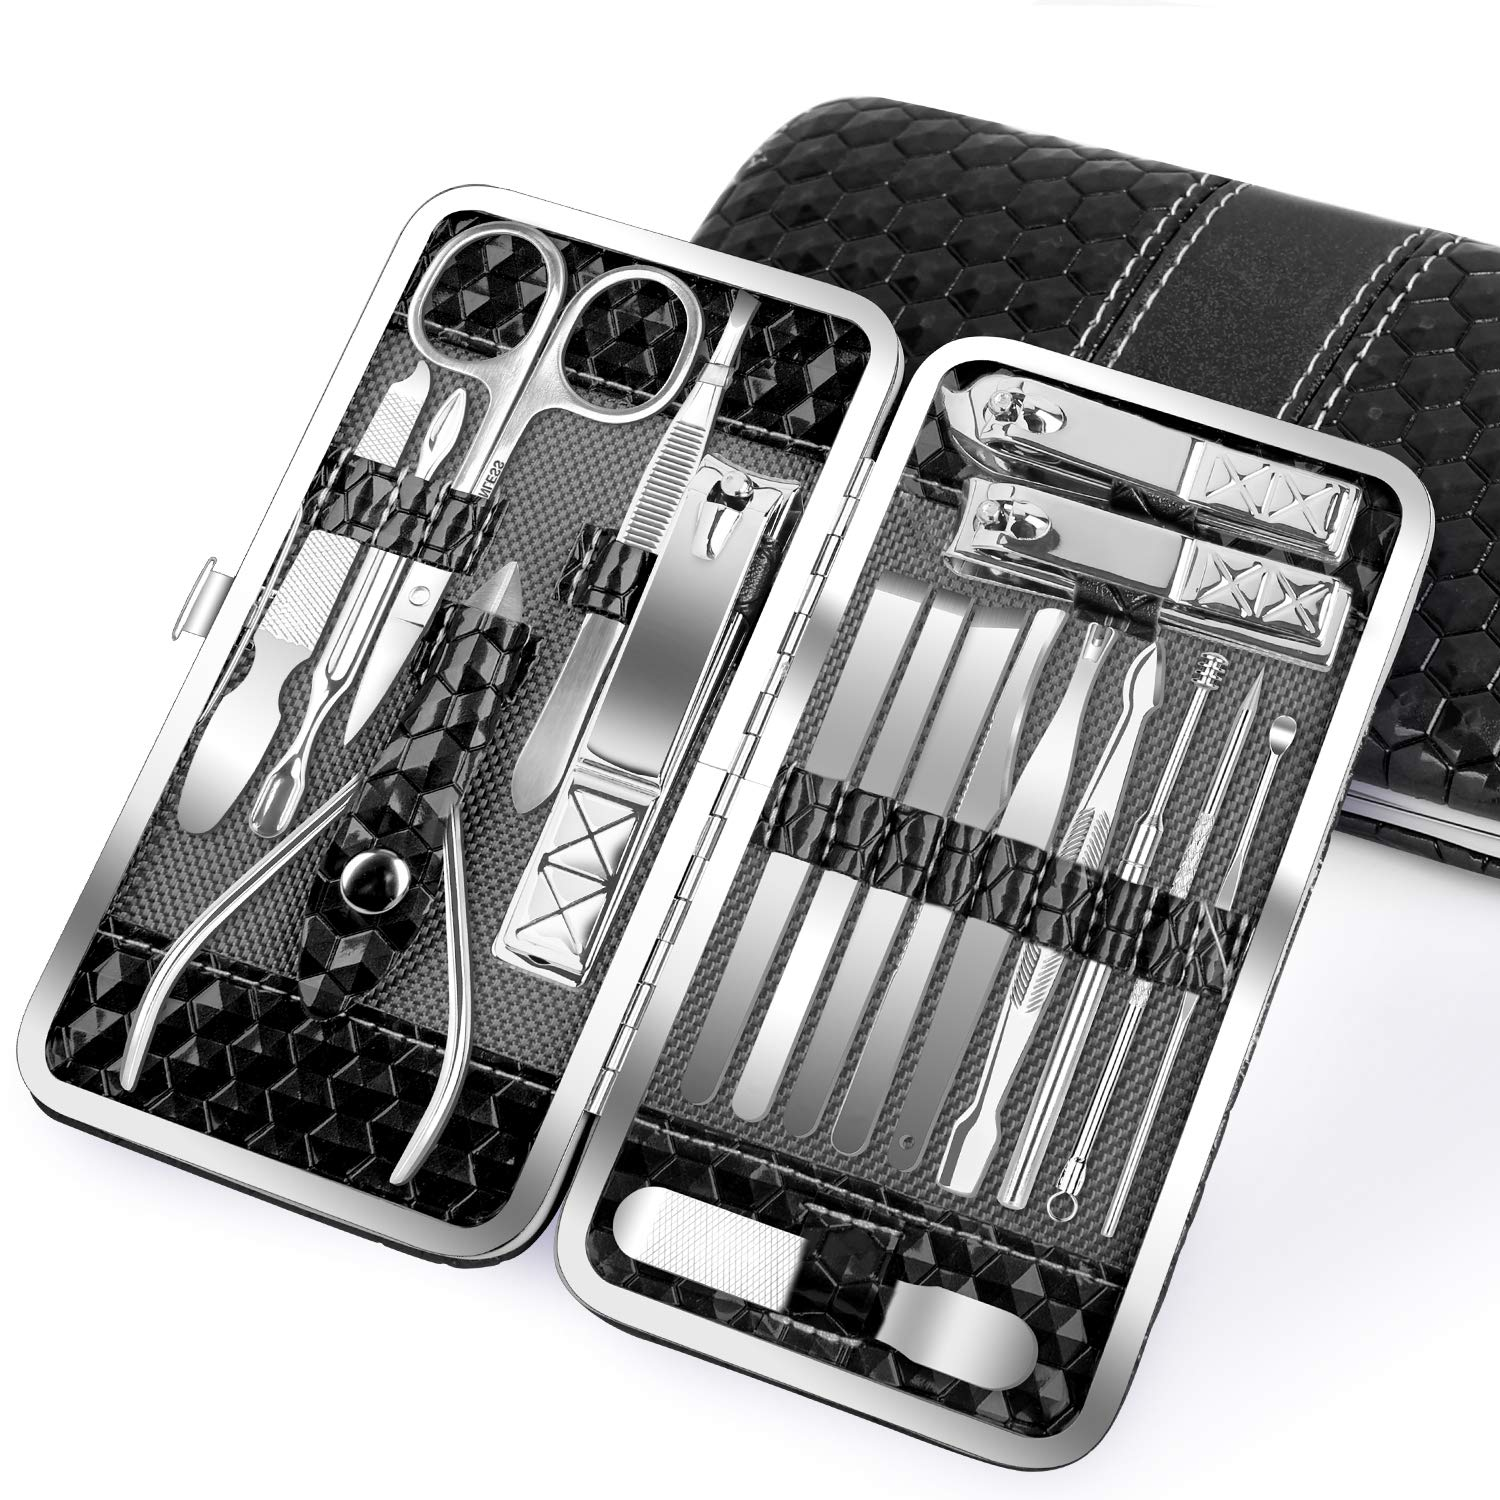 Nail Clippers Set 18PCS Manicure Set Manicure & Pedicure Tools Professional Nails Includes Scissor Tweezer Knife Ear Pick Cuticle Remover Tools - Nail Care Tools with Travel Case (black) : Beauty